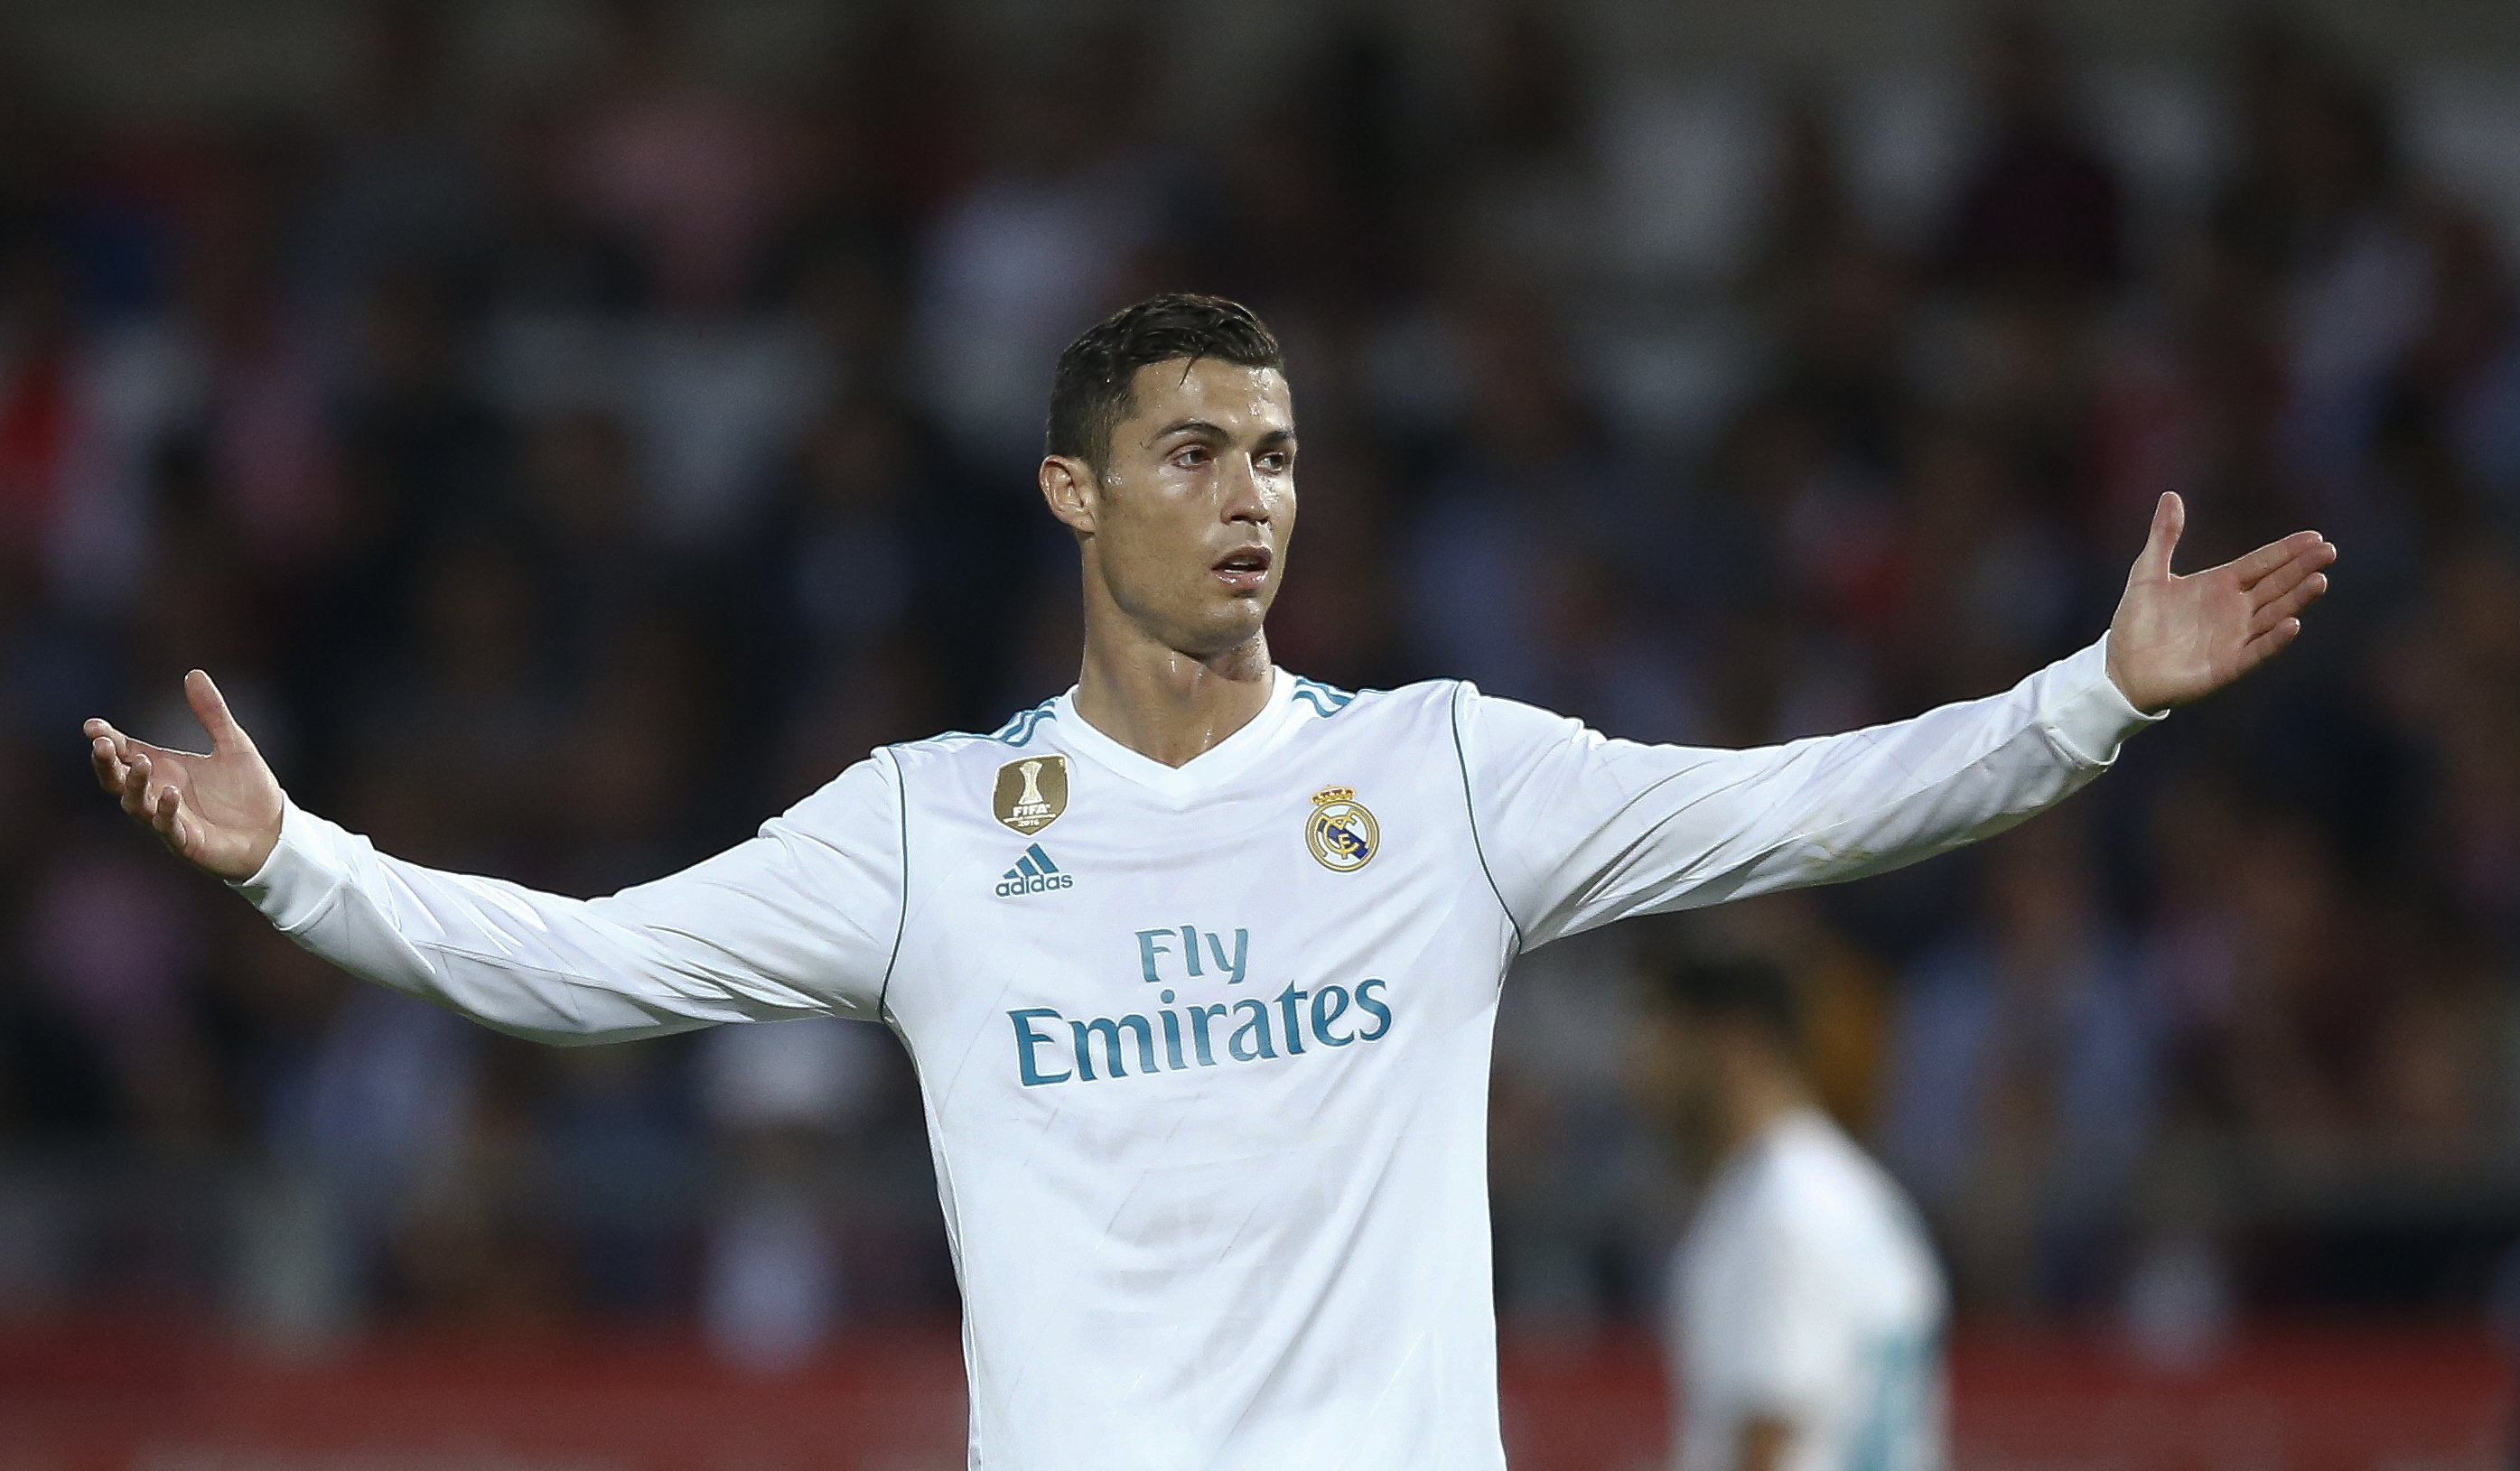 Why wouldn't Cristiano Ronaldo swap shirts?! Girona player reveals all